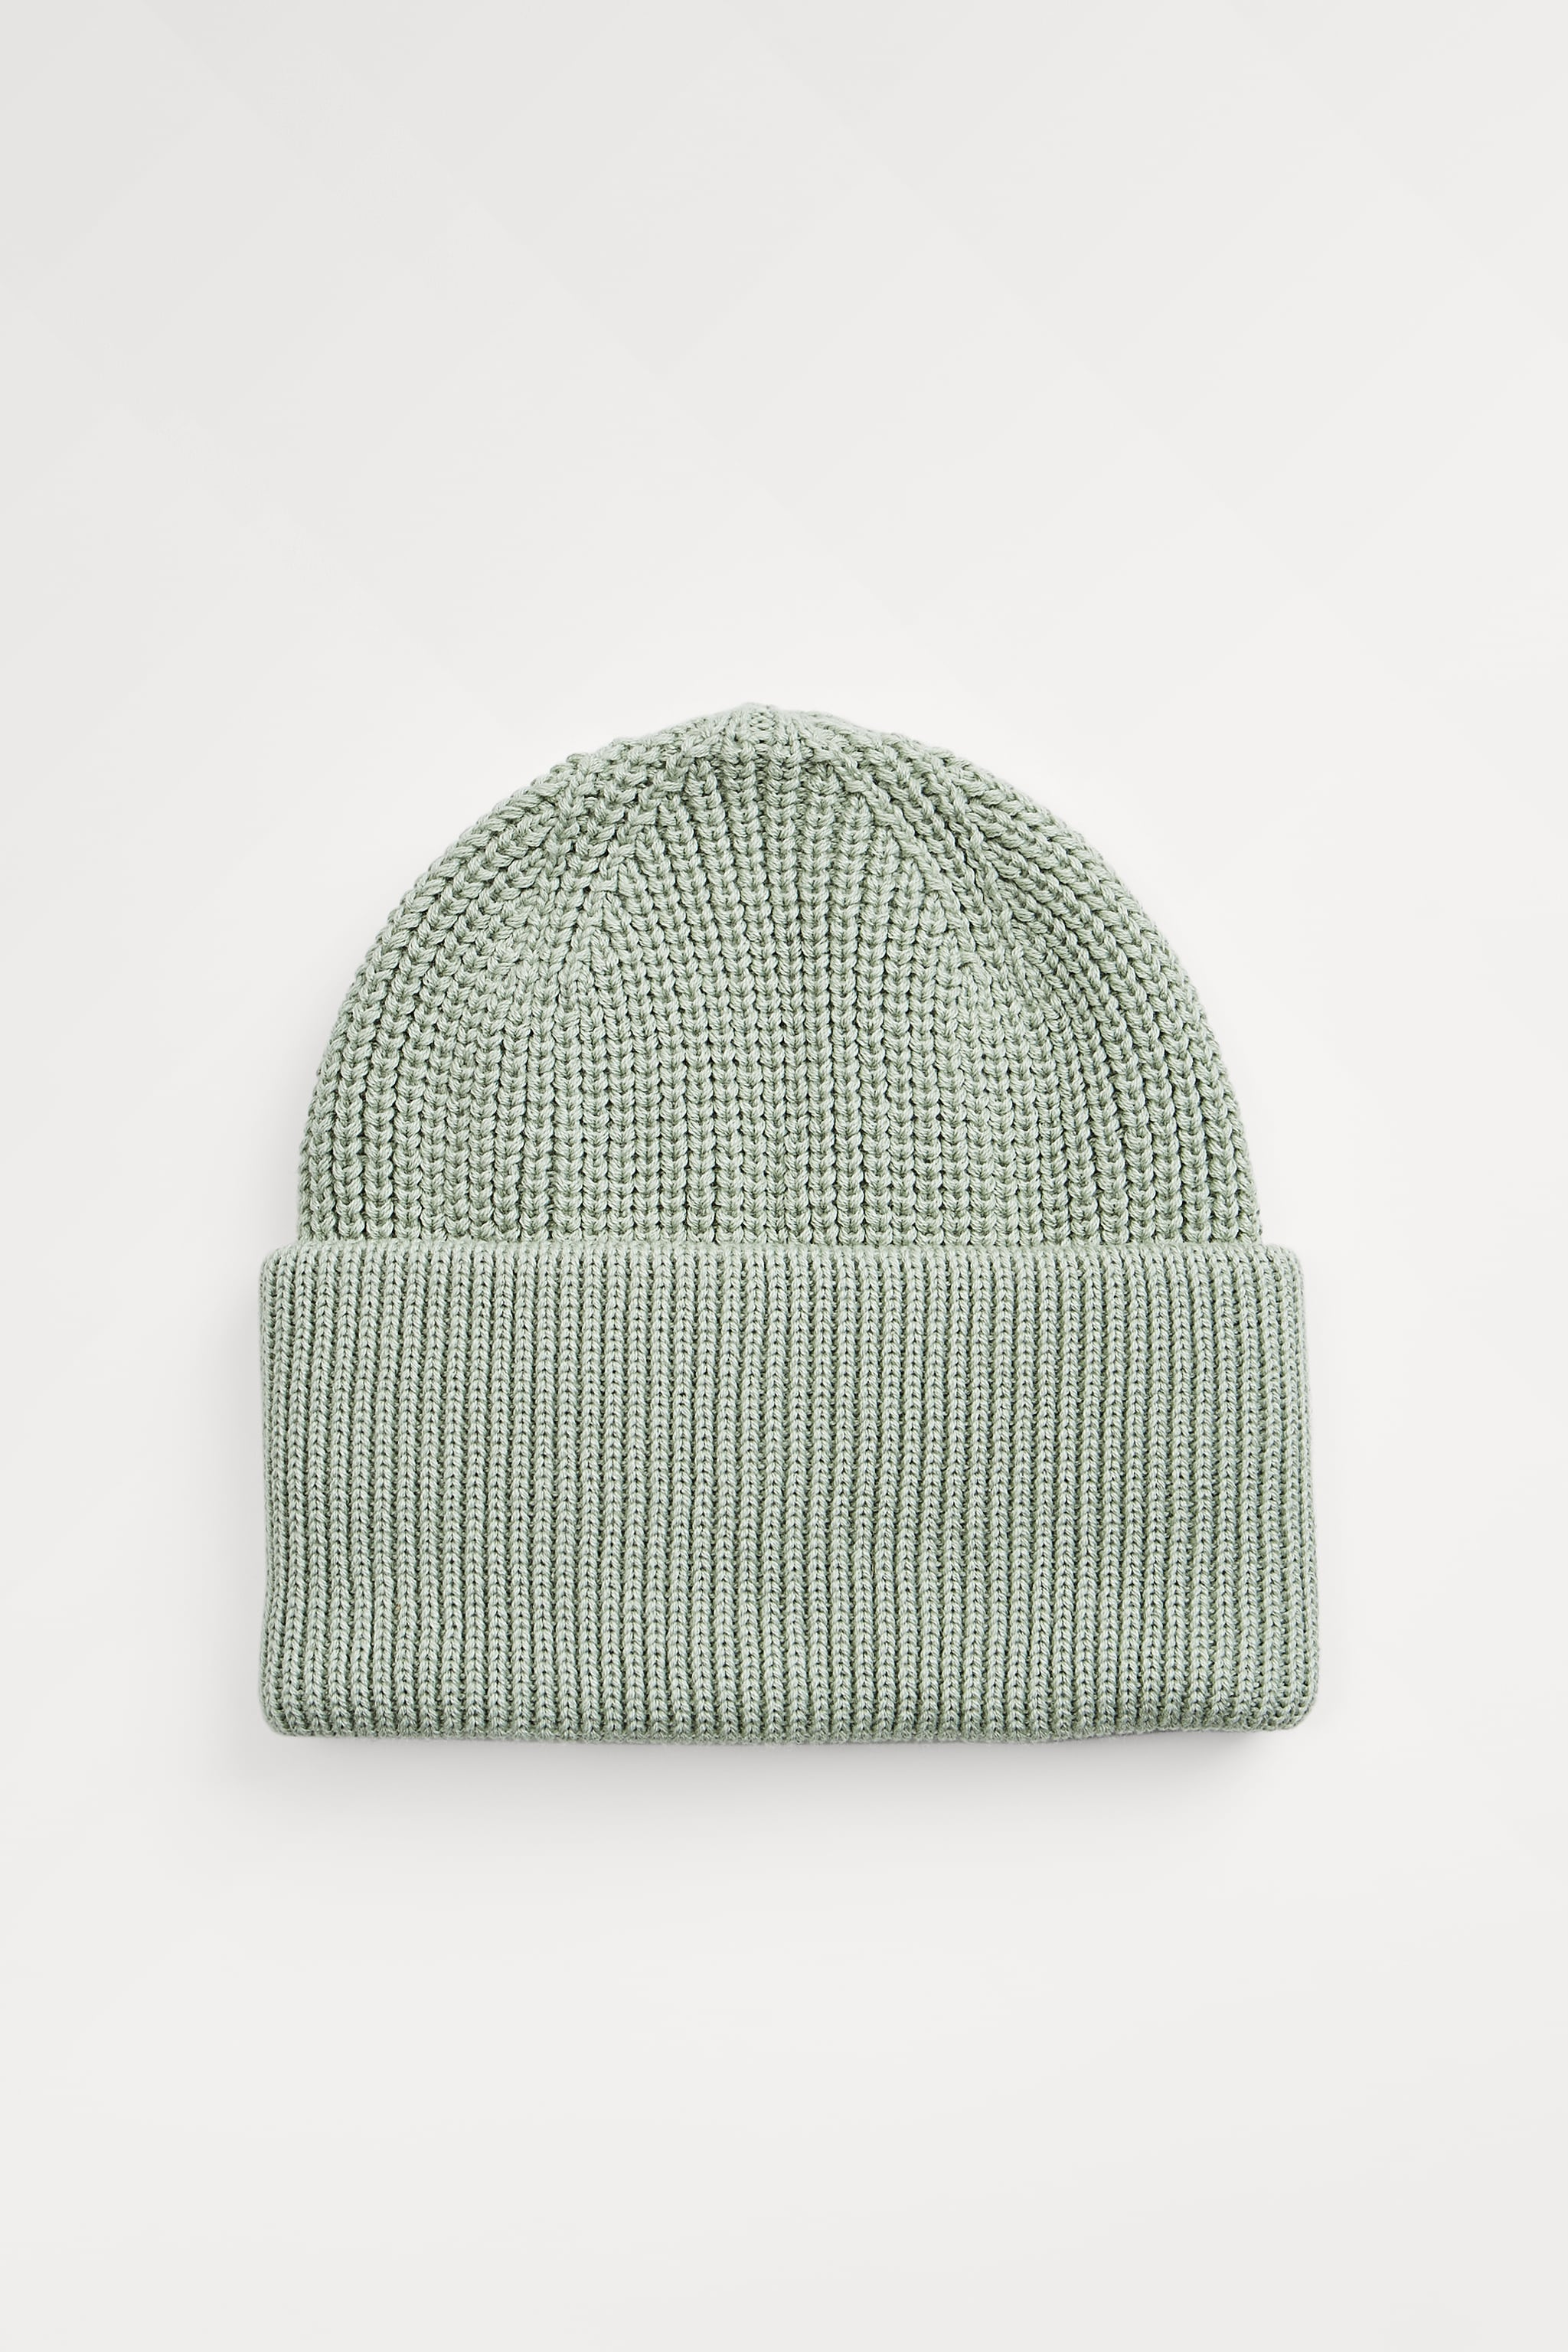 Zara OVERSIZED KNIT HAT